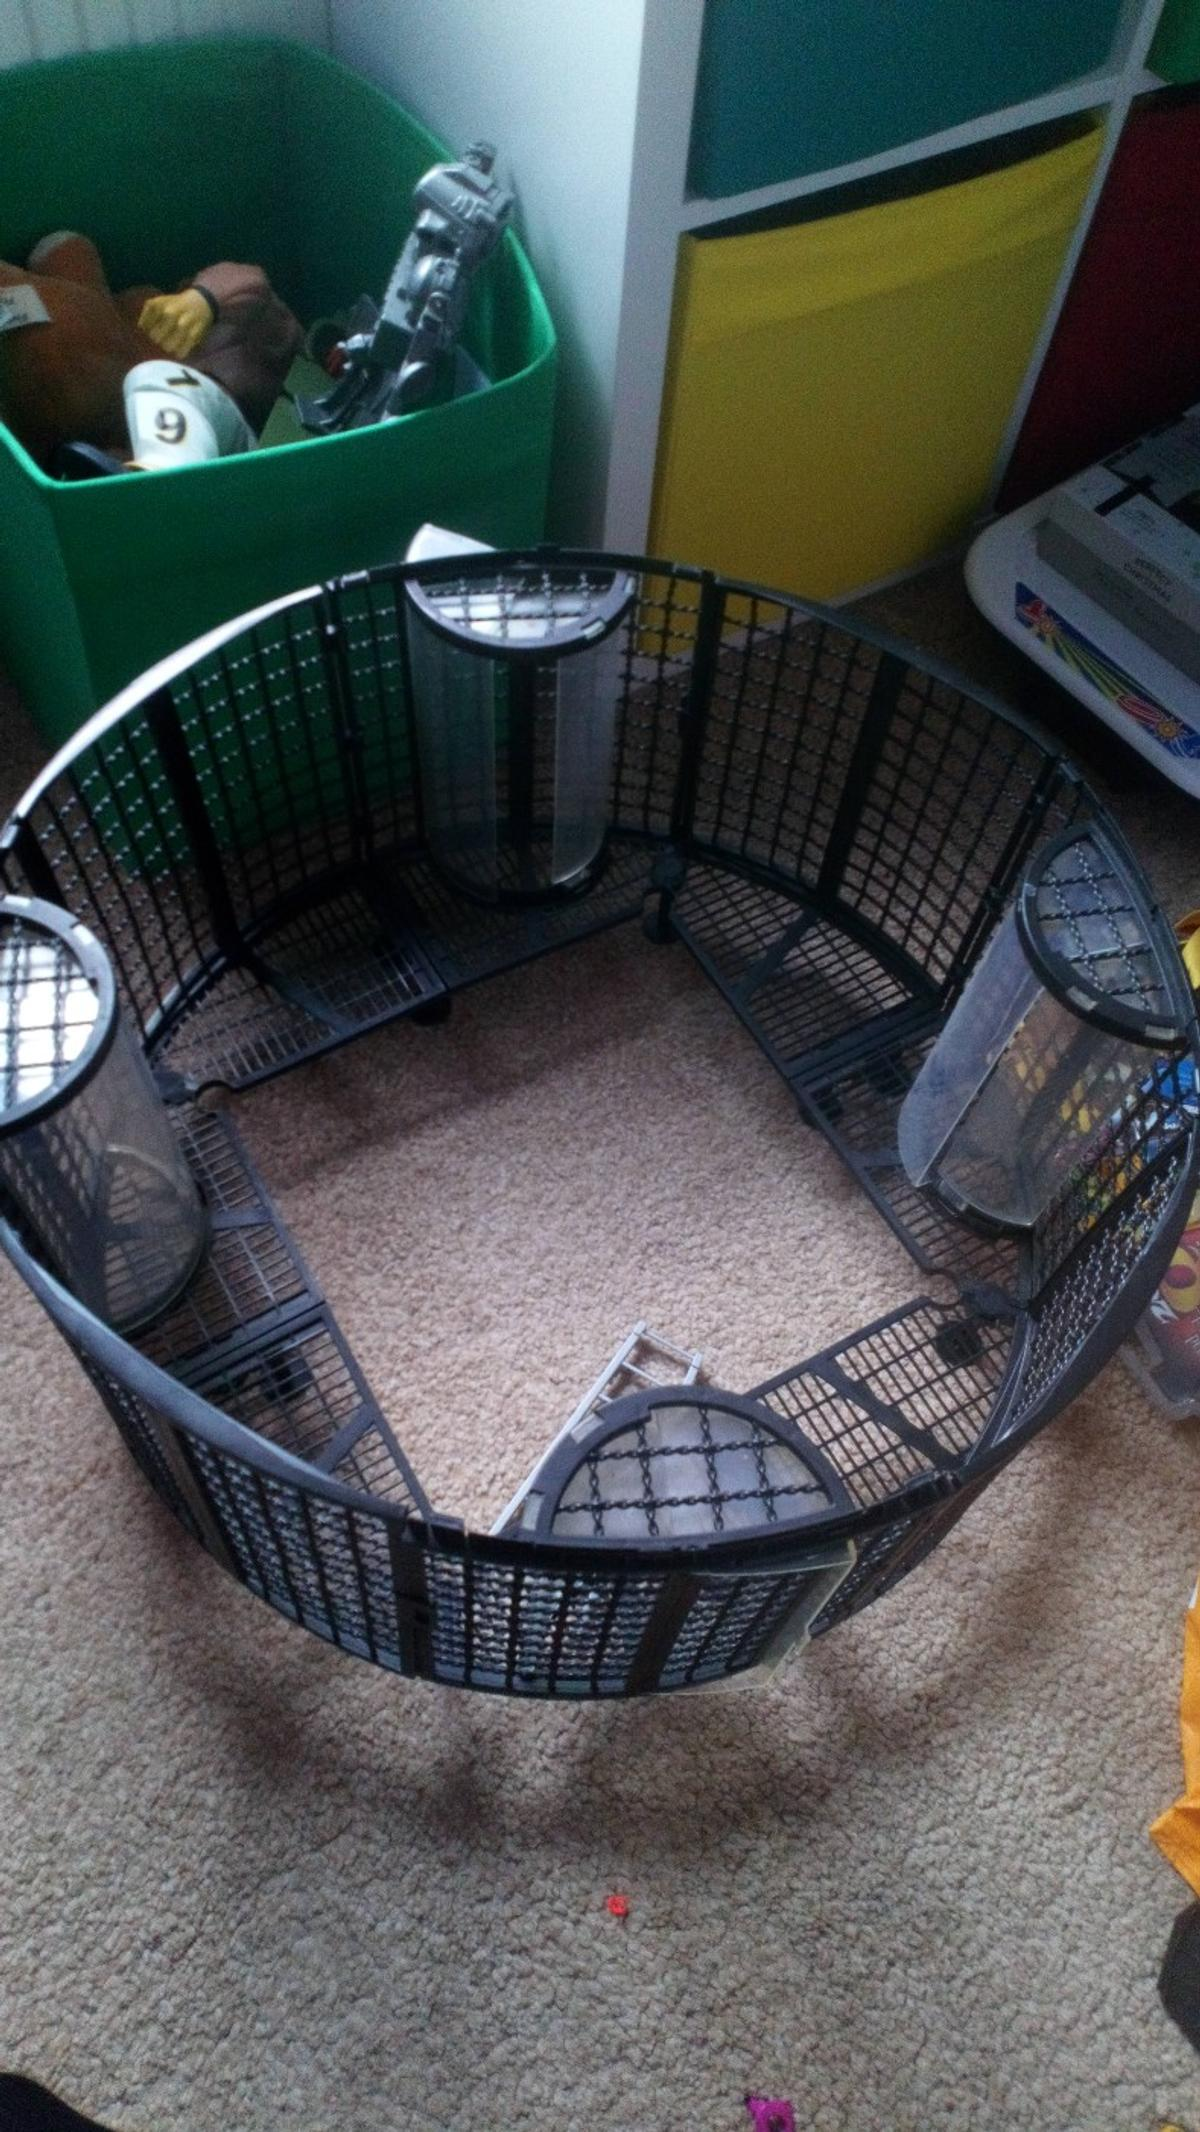 Wwe Elimination Chamber Cage